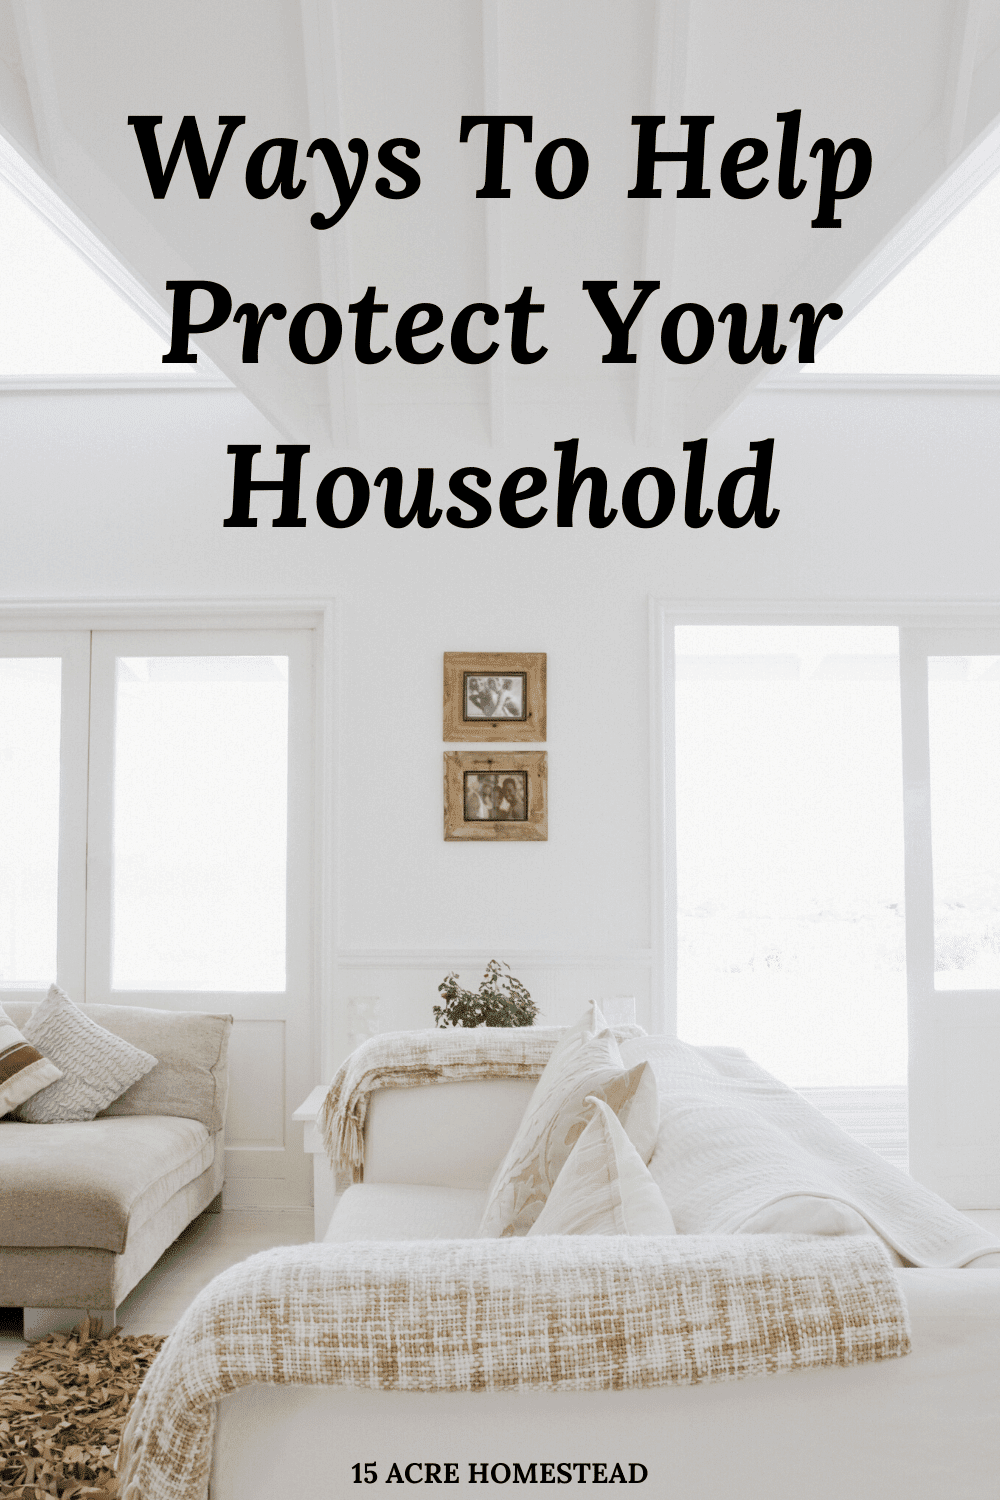 Use these simple tips to learn how to protect your household and your family.